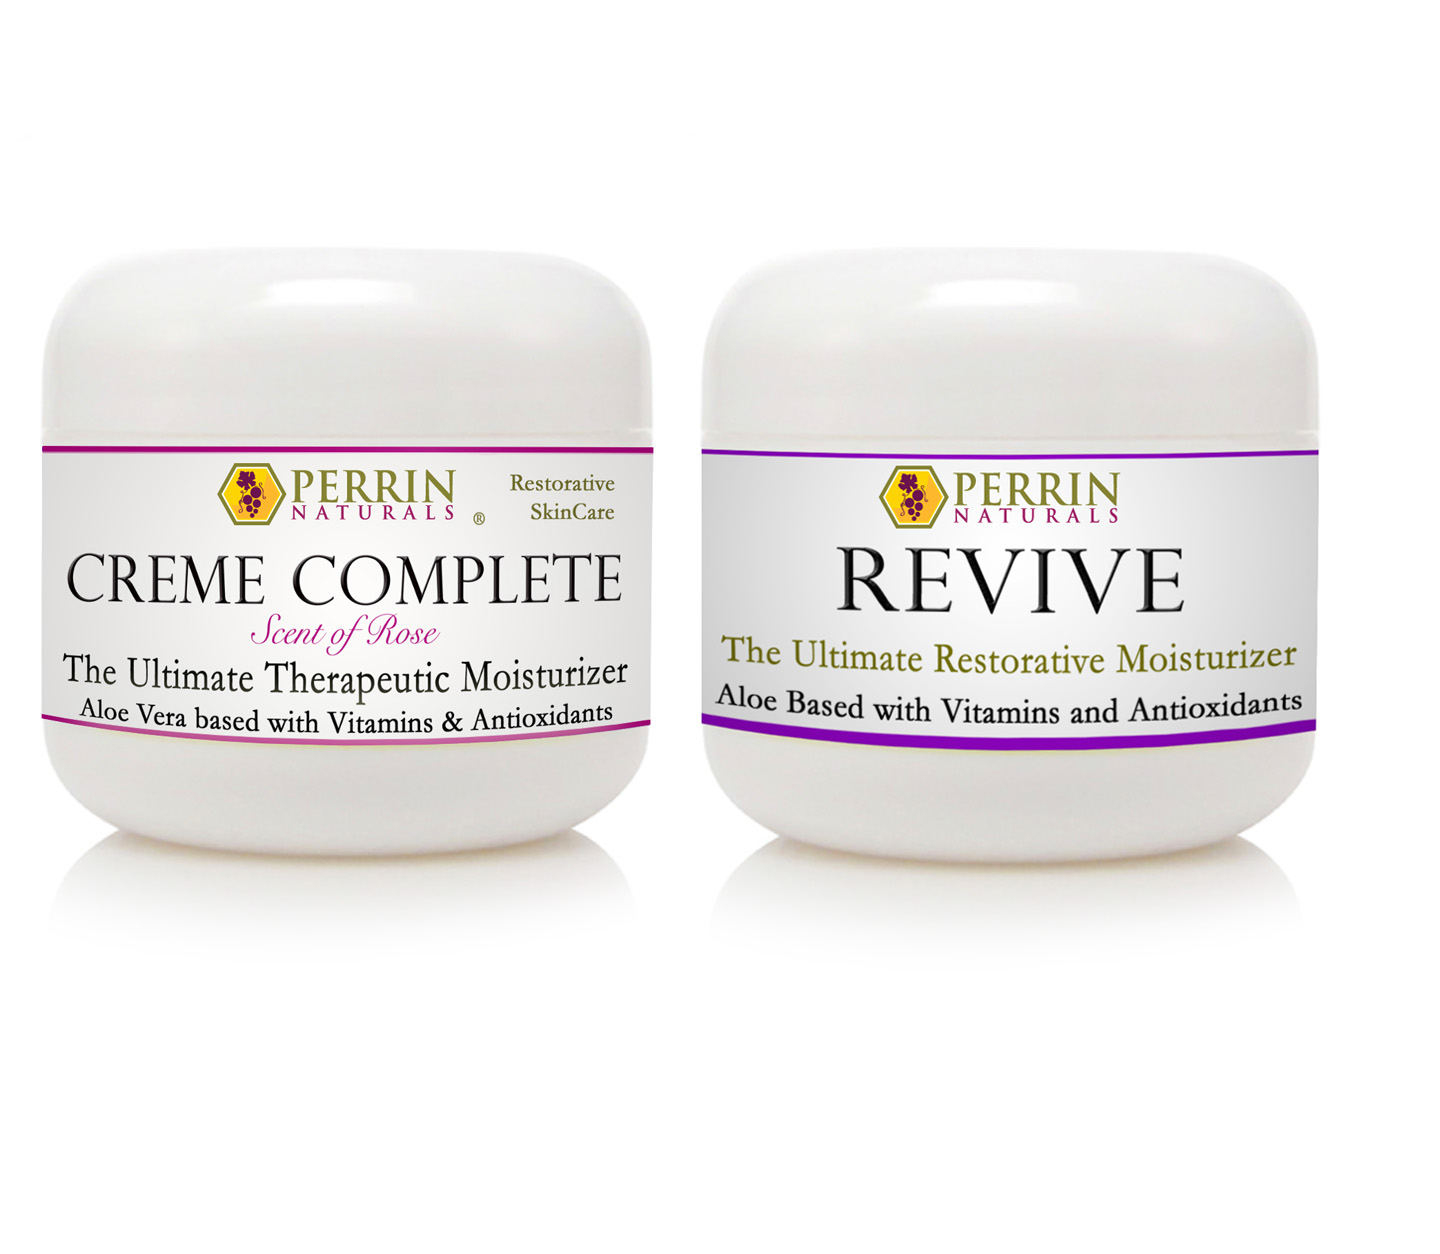 creme complete rose and revive